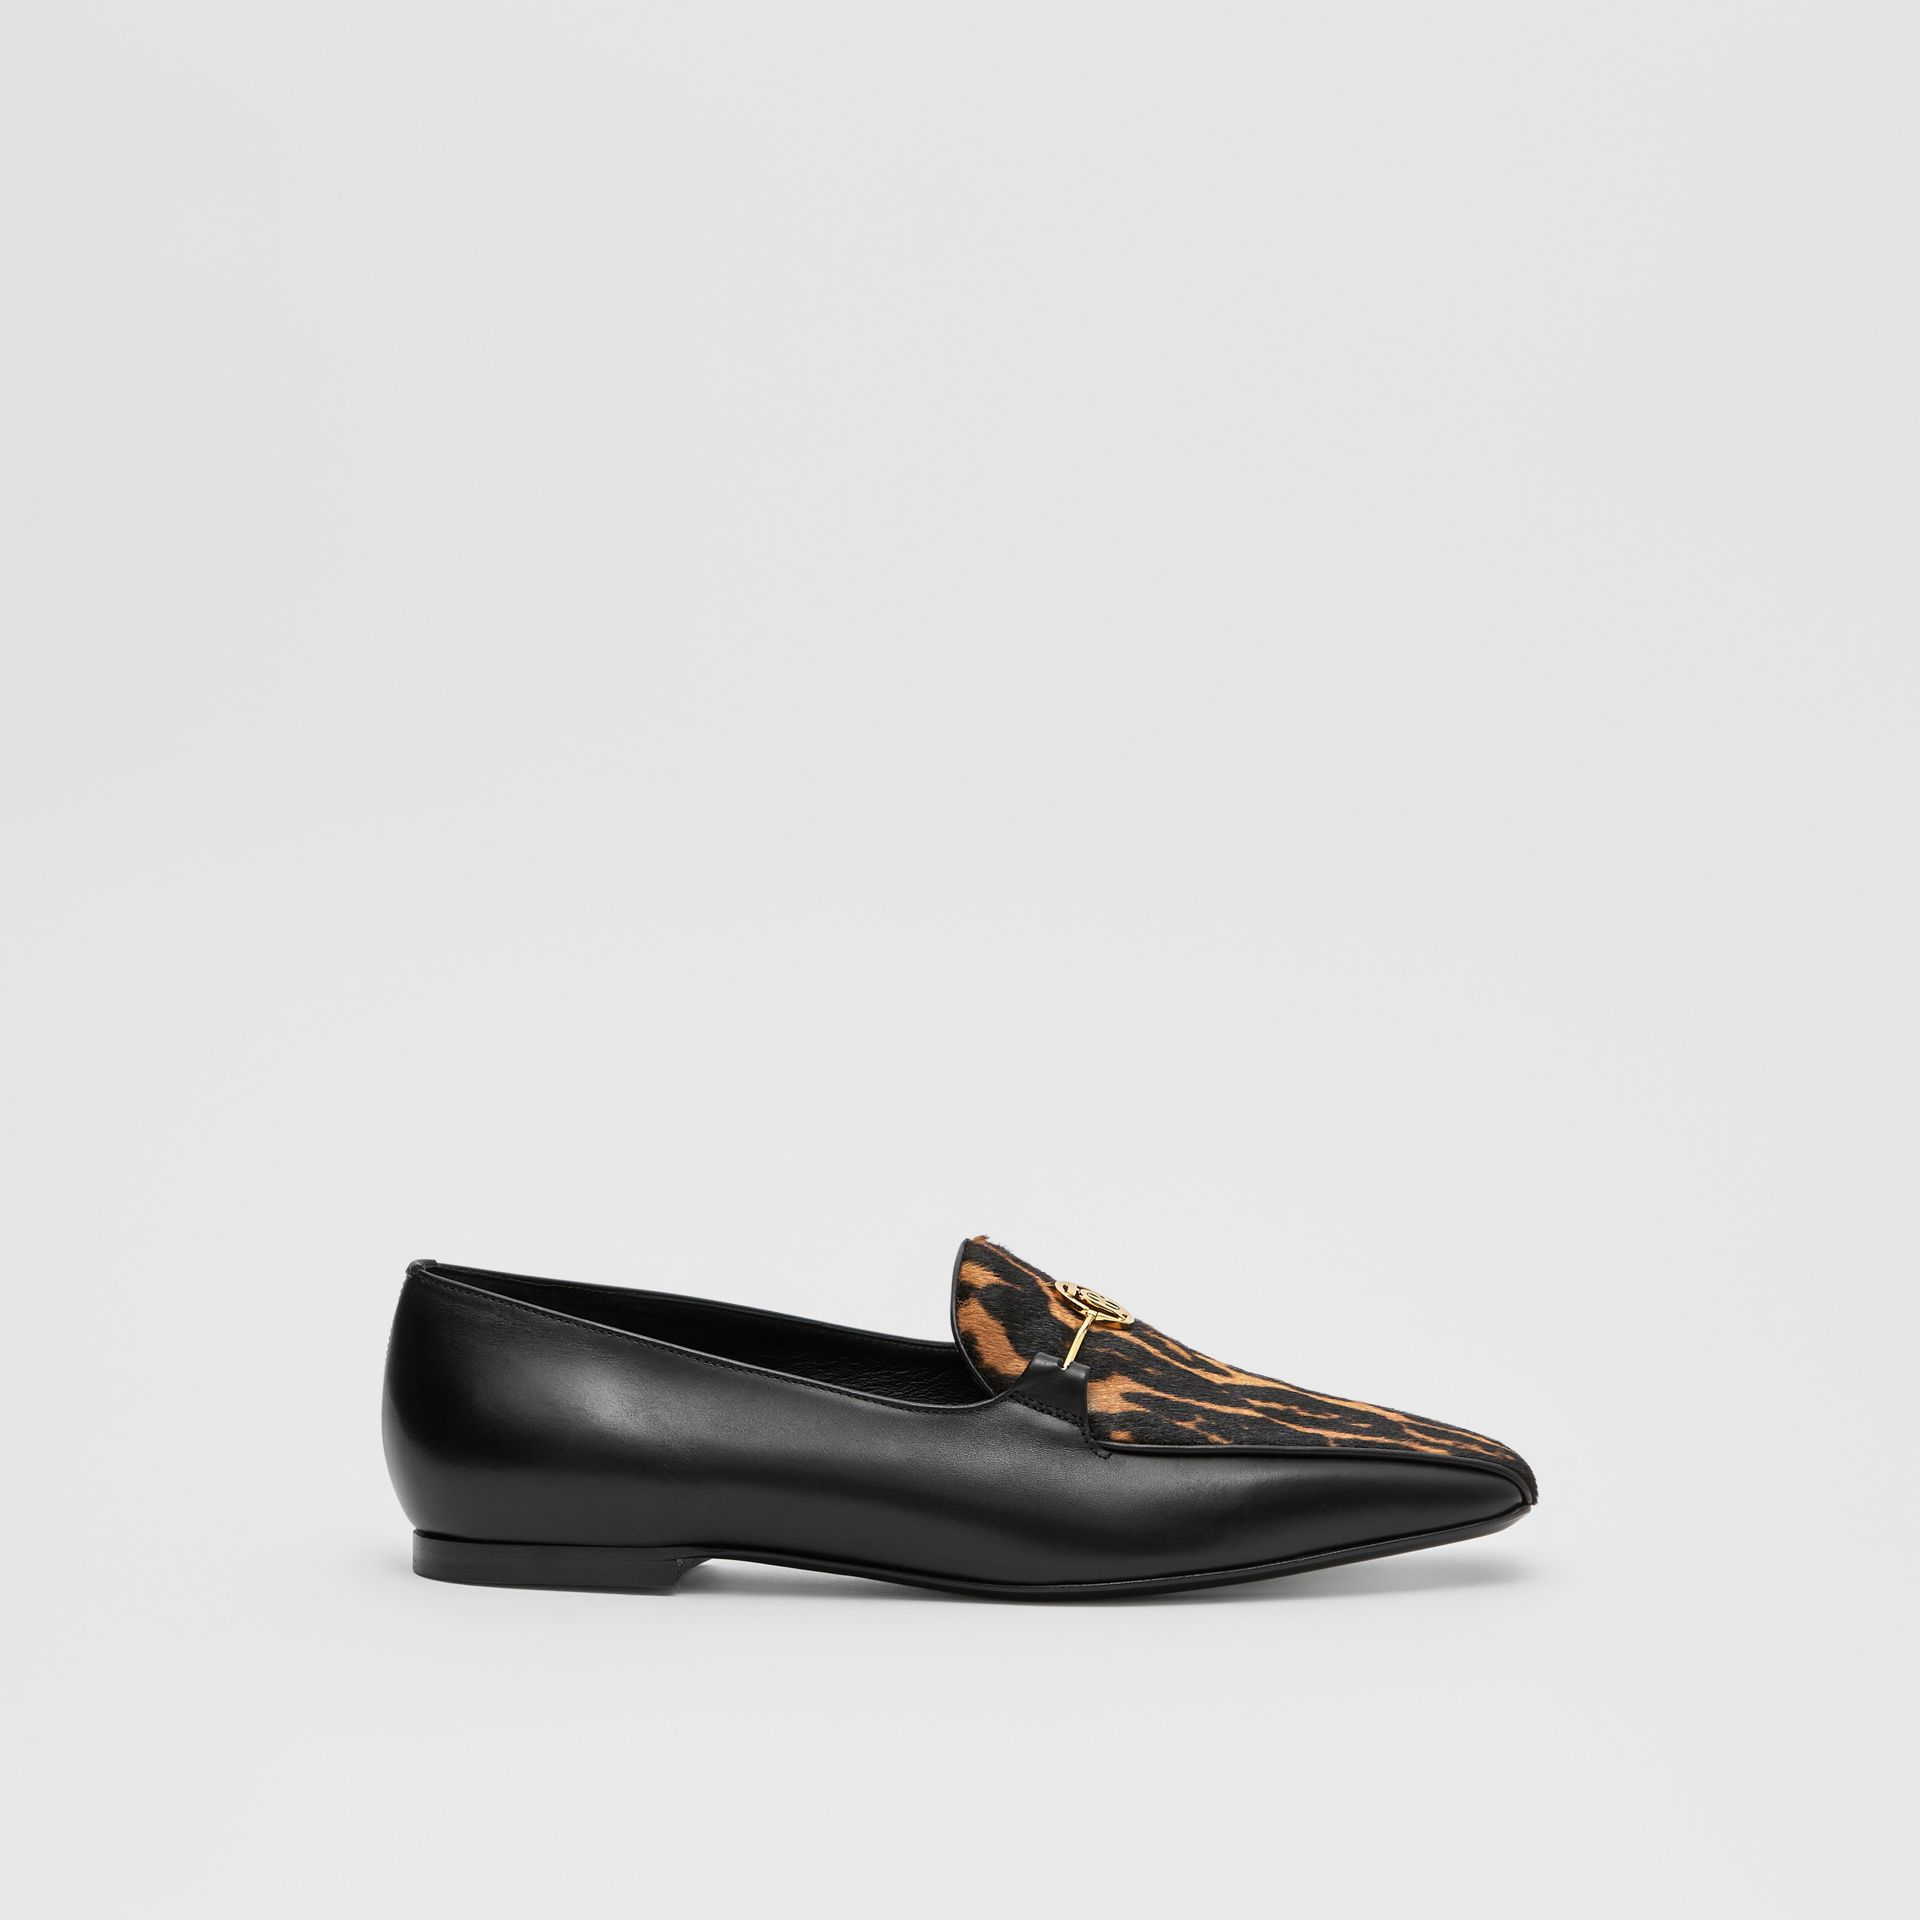 Leopard Print Calf Hair and Leather Loafers in Black/leopard - Women | Burberry United Kingdom - gallery image 5